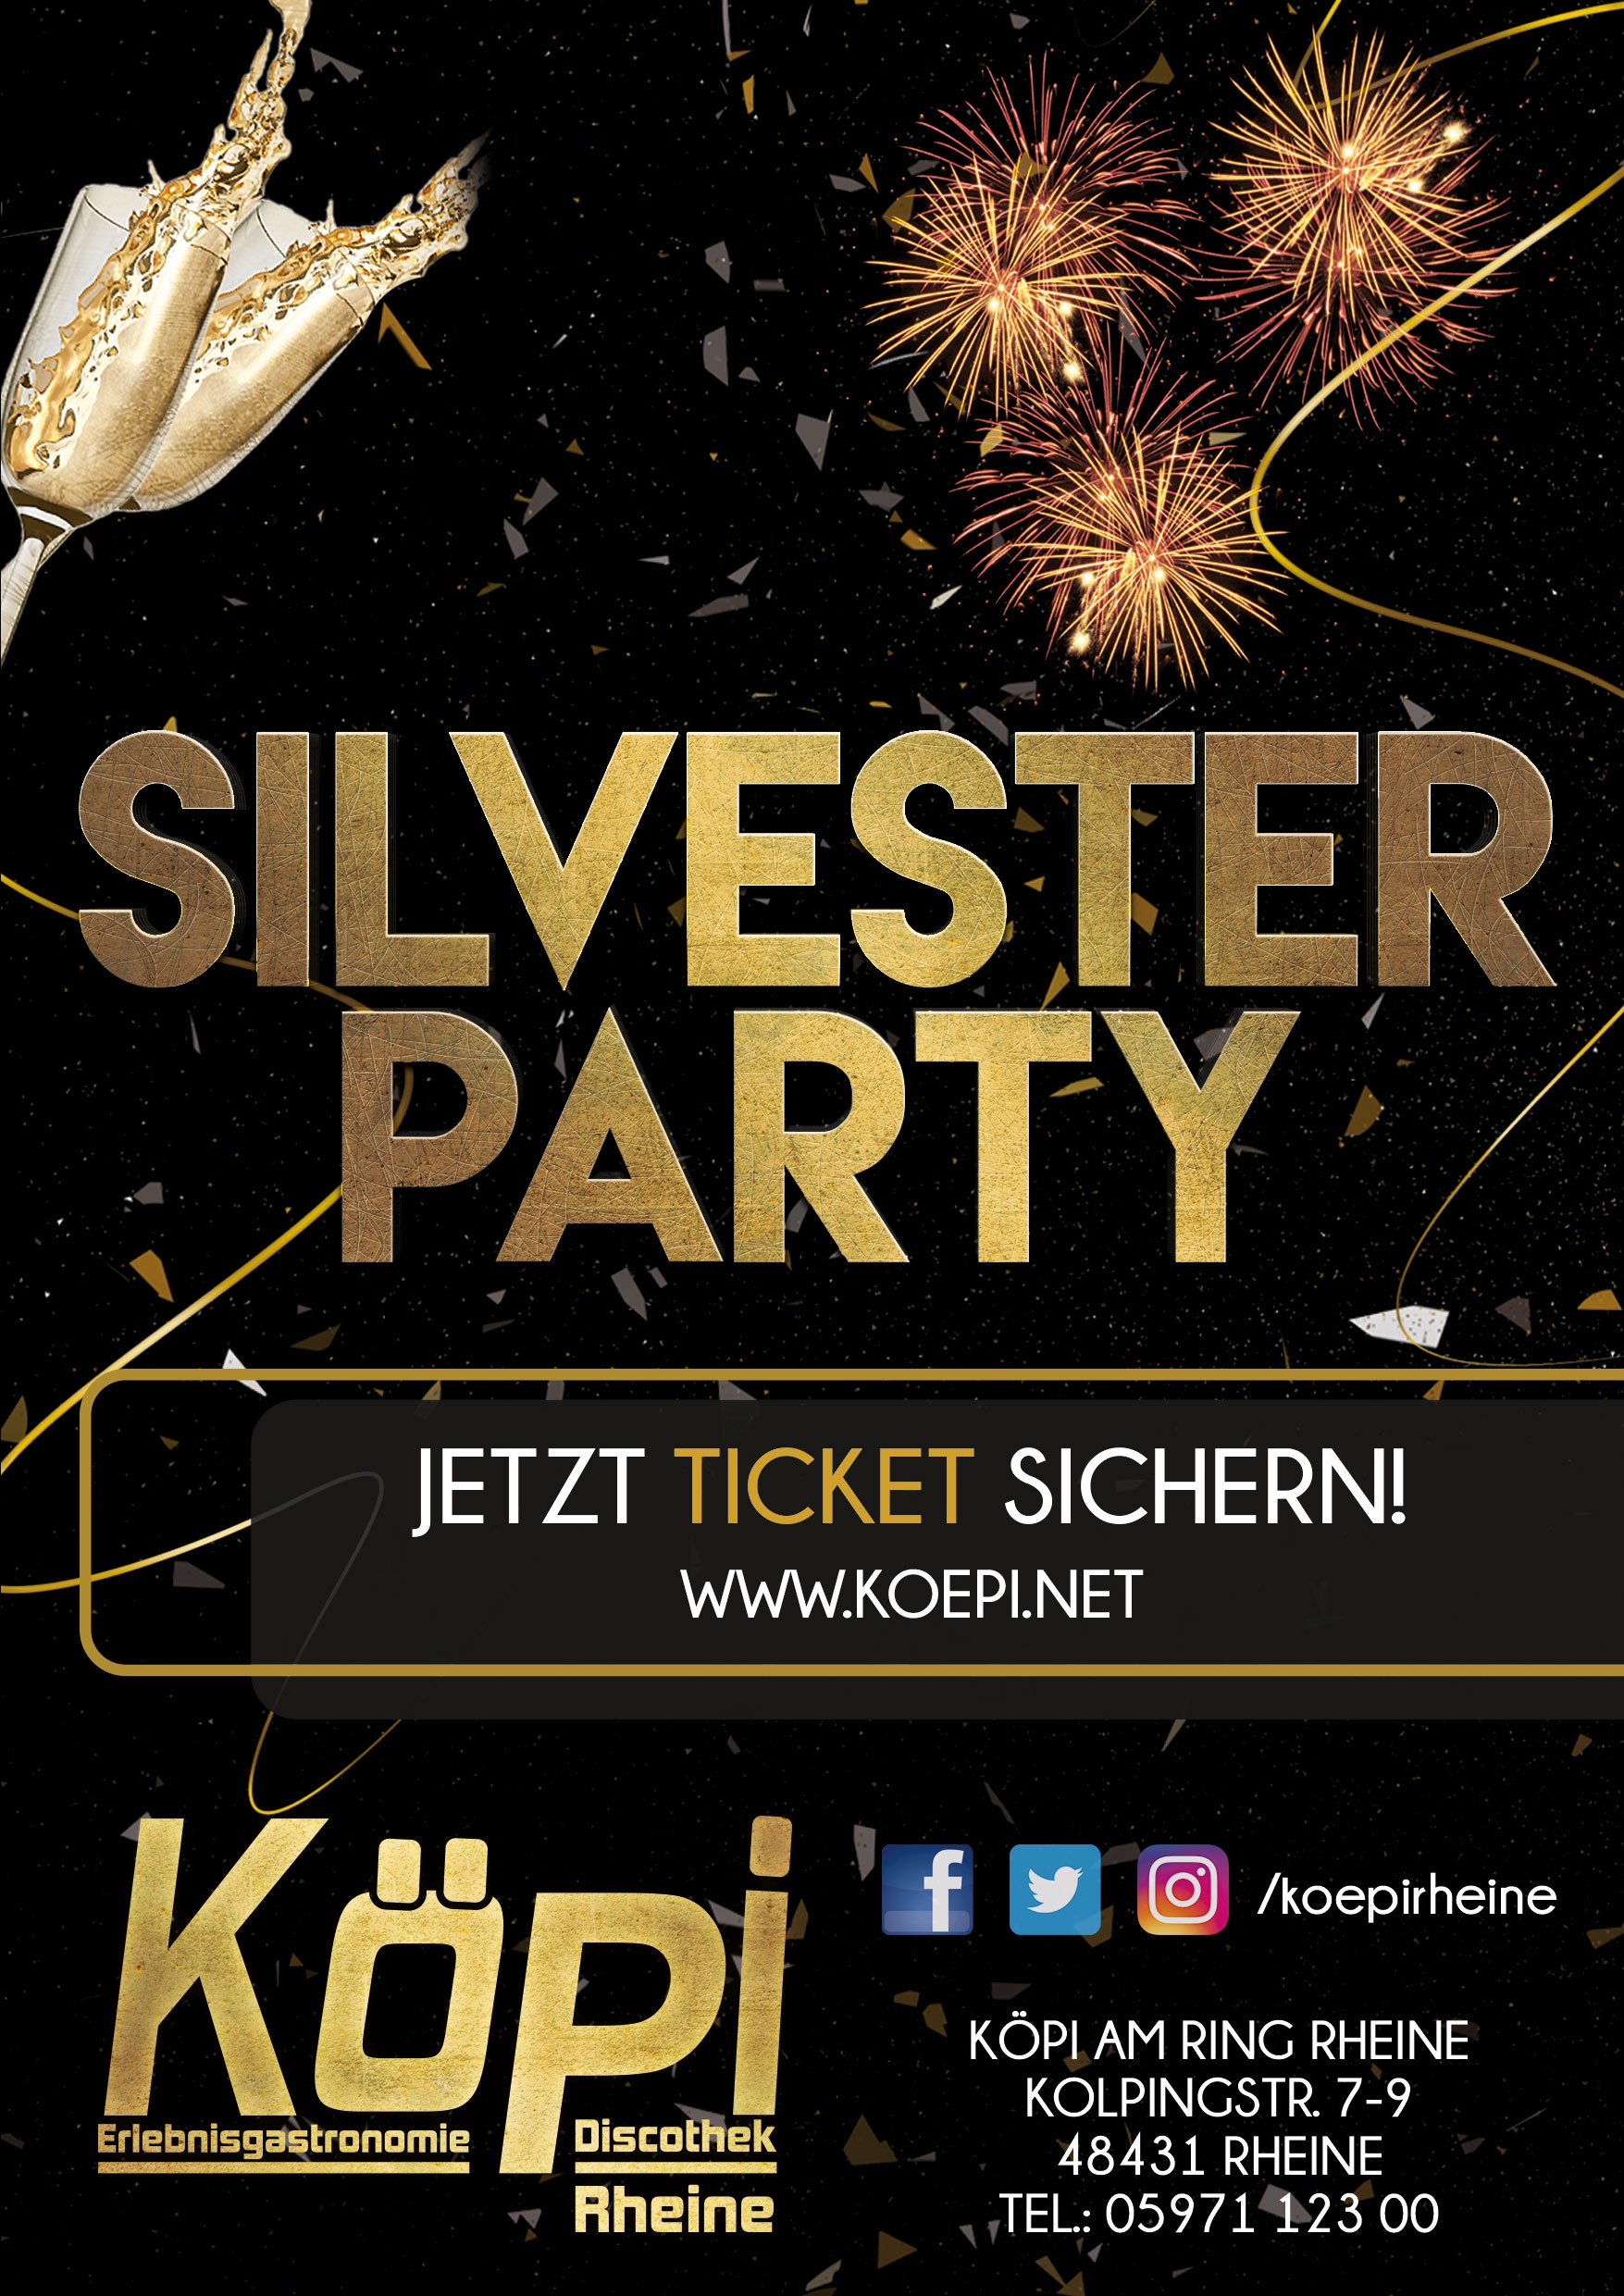 Berlin single party silvester